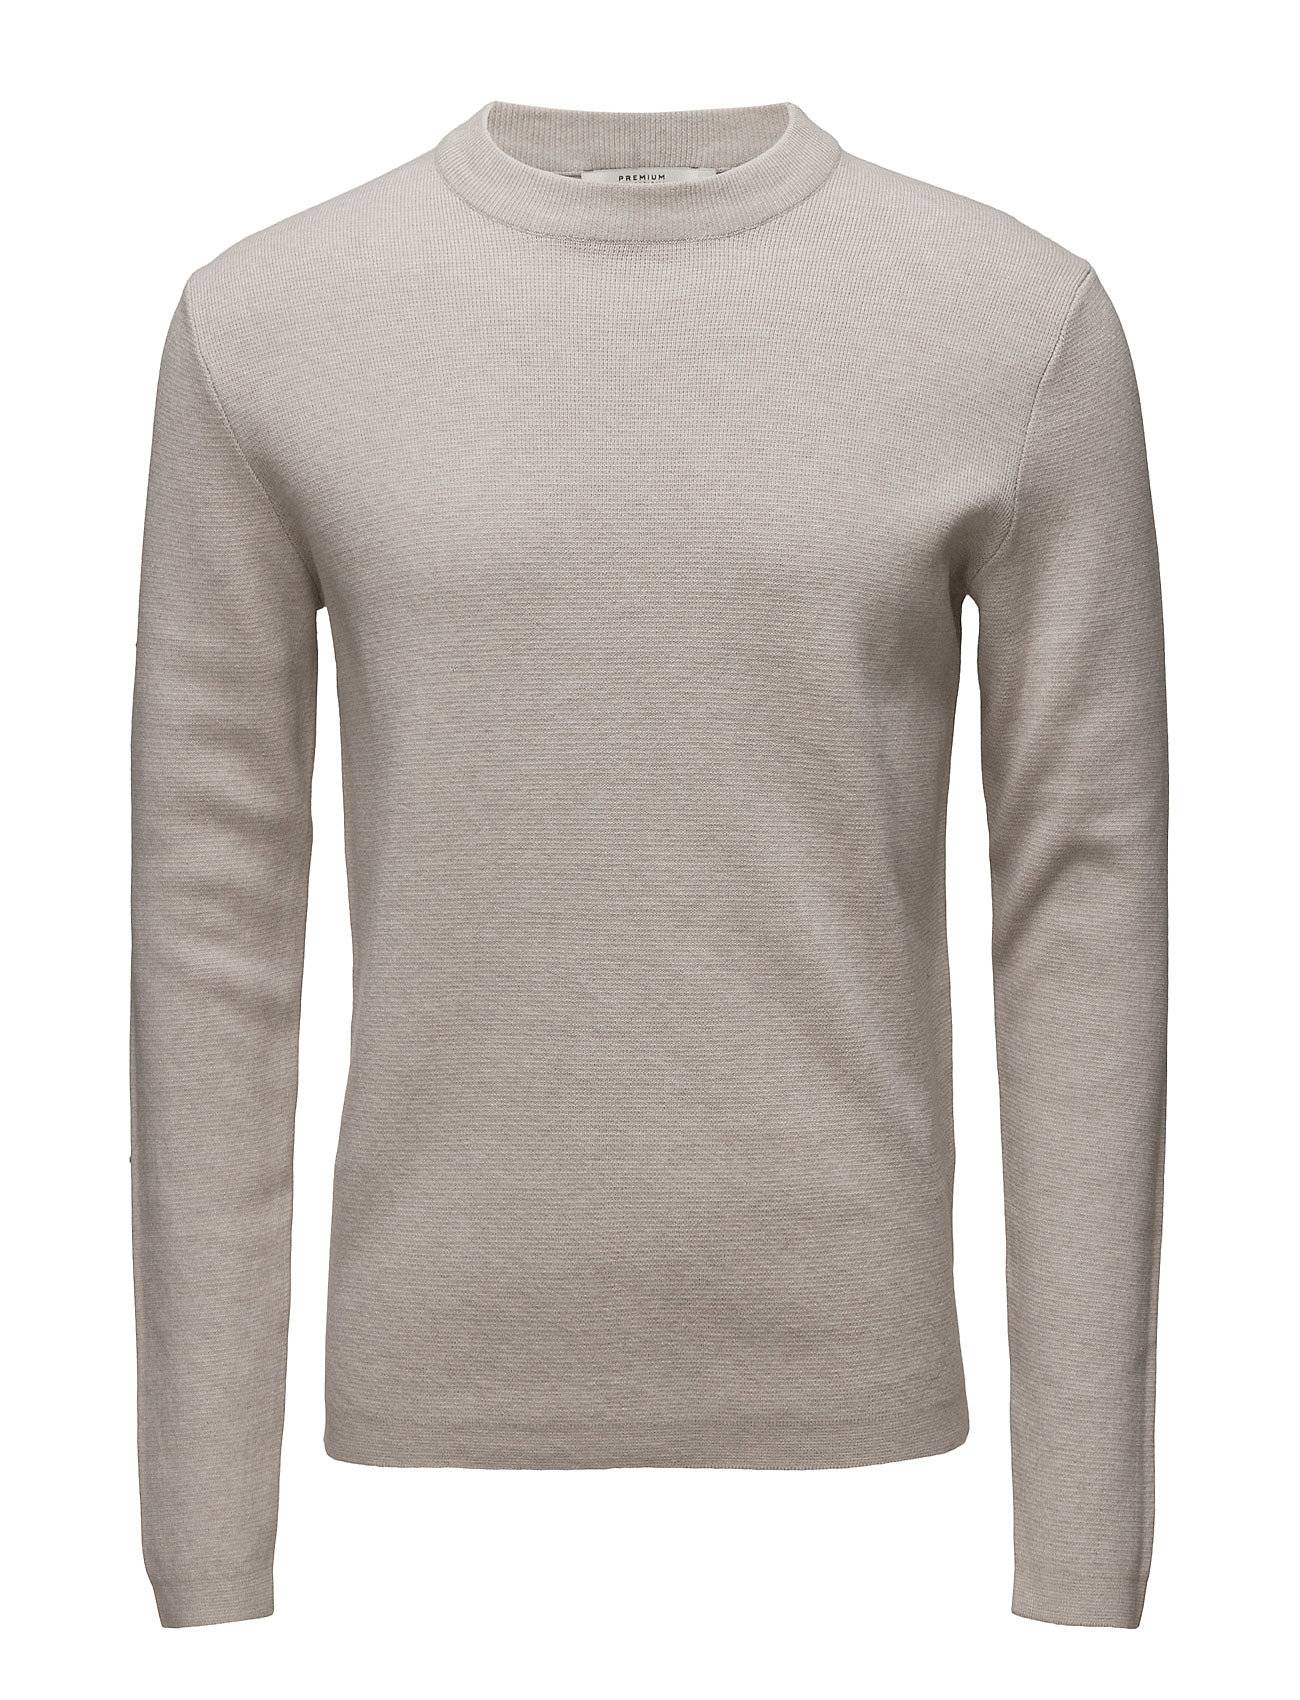 Jack & Jones Premium Jprphilip Knit Crew Neck